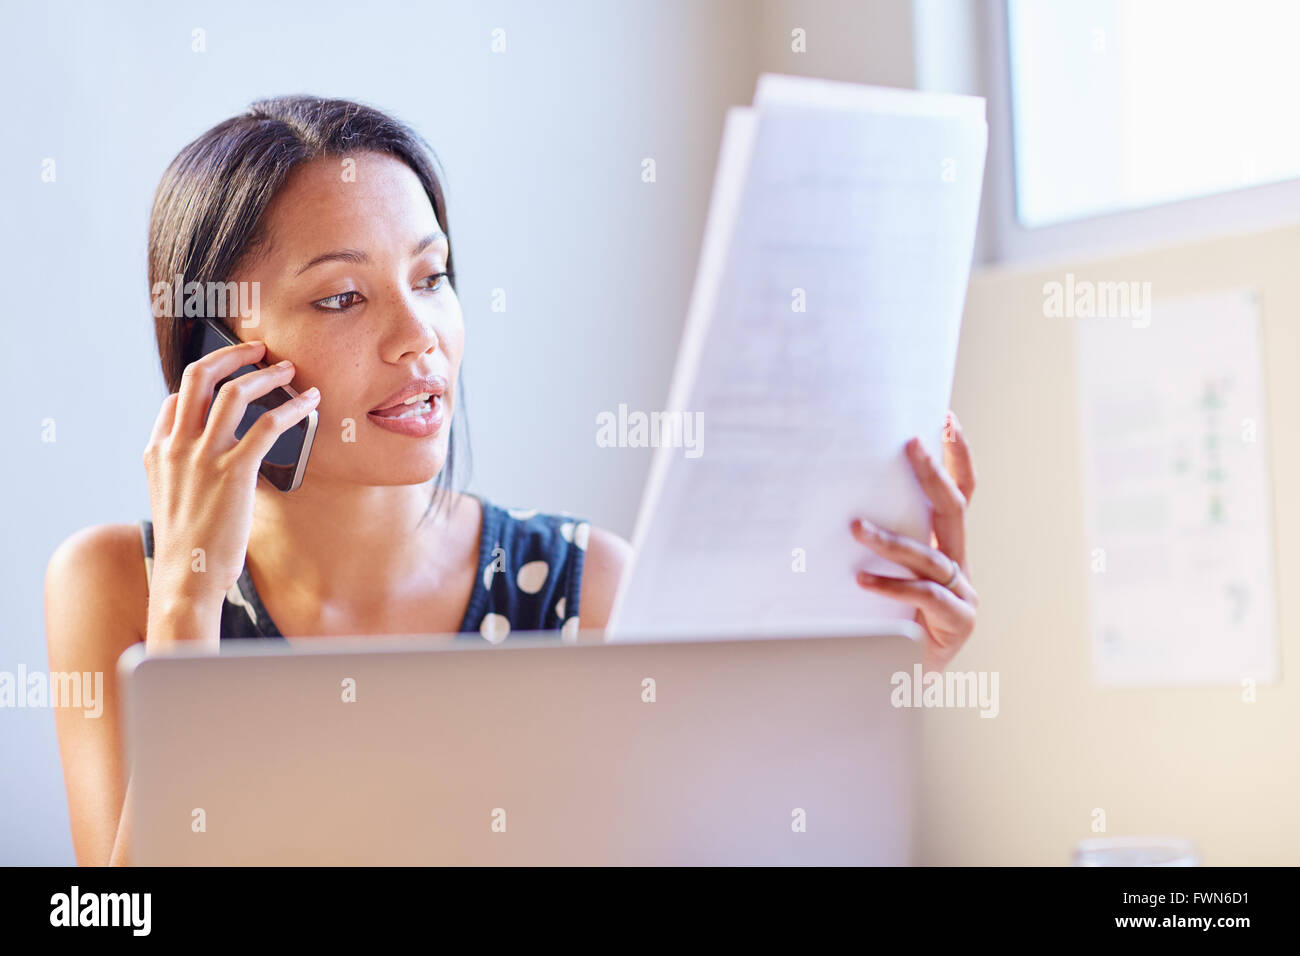 Ensuring her documents are in order - Stock Image